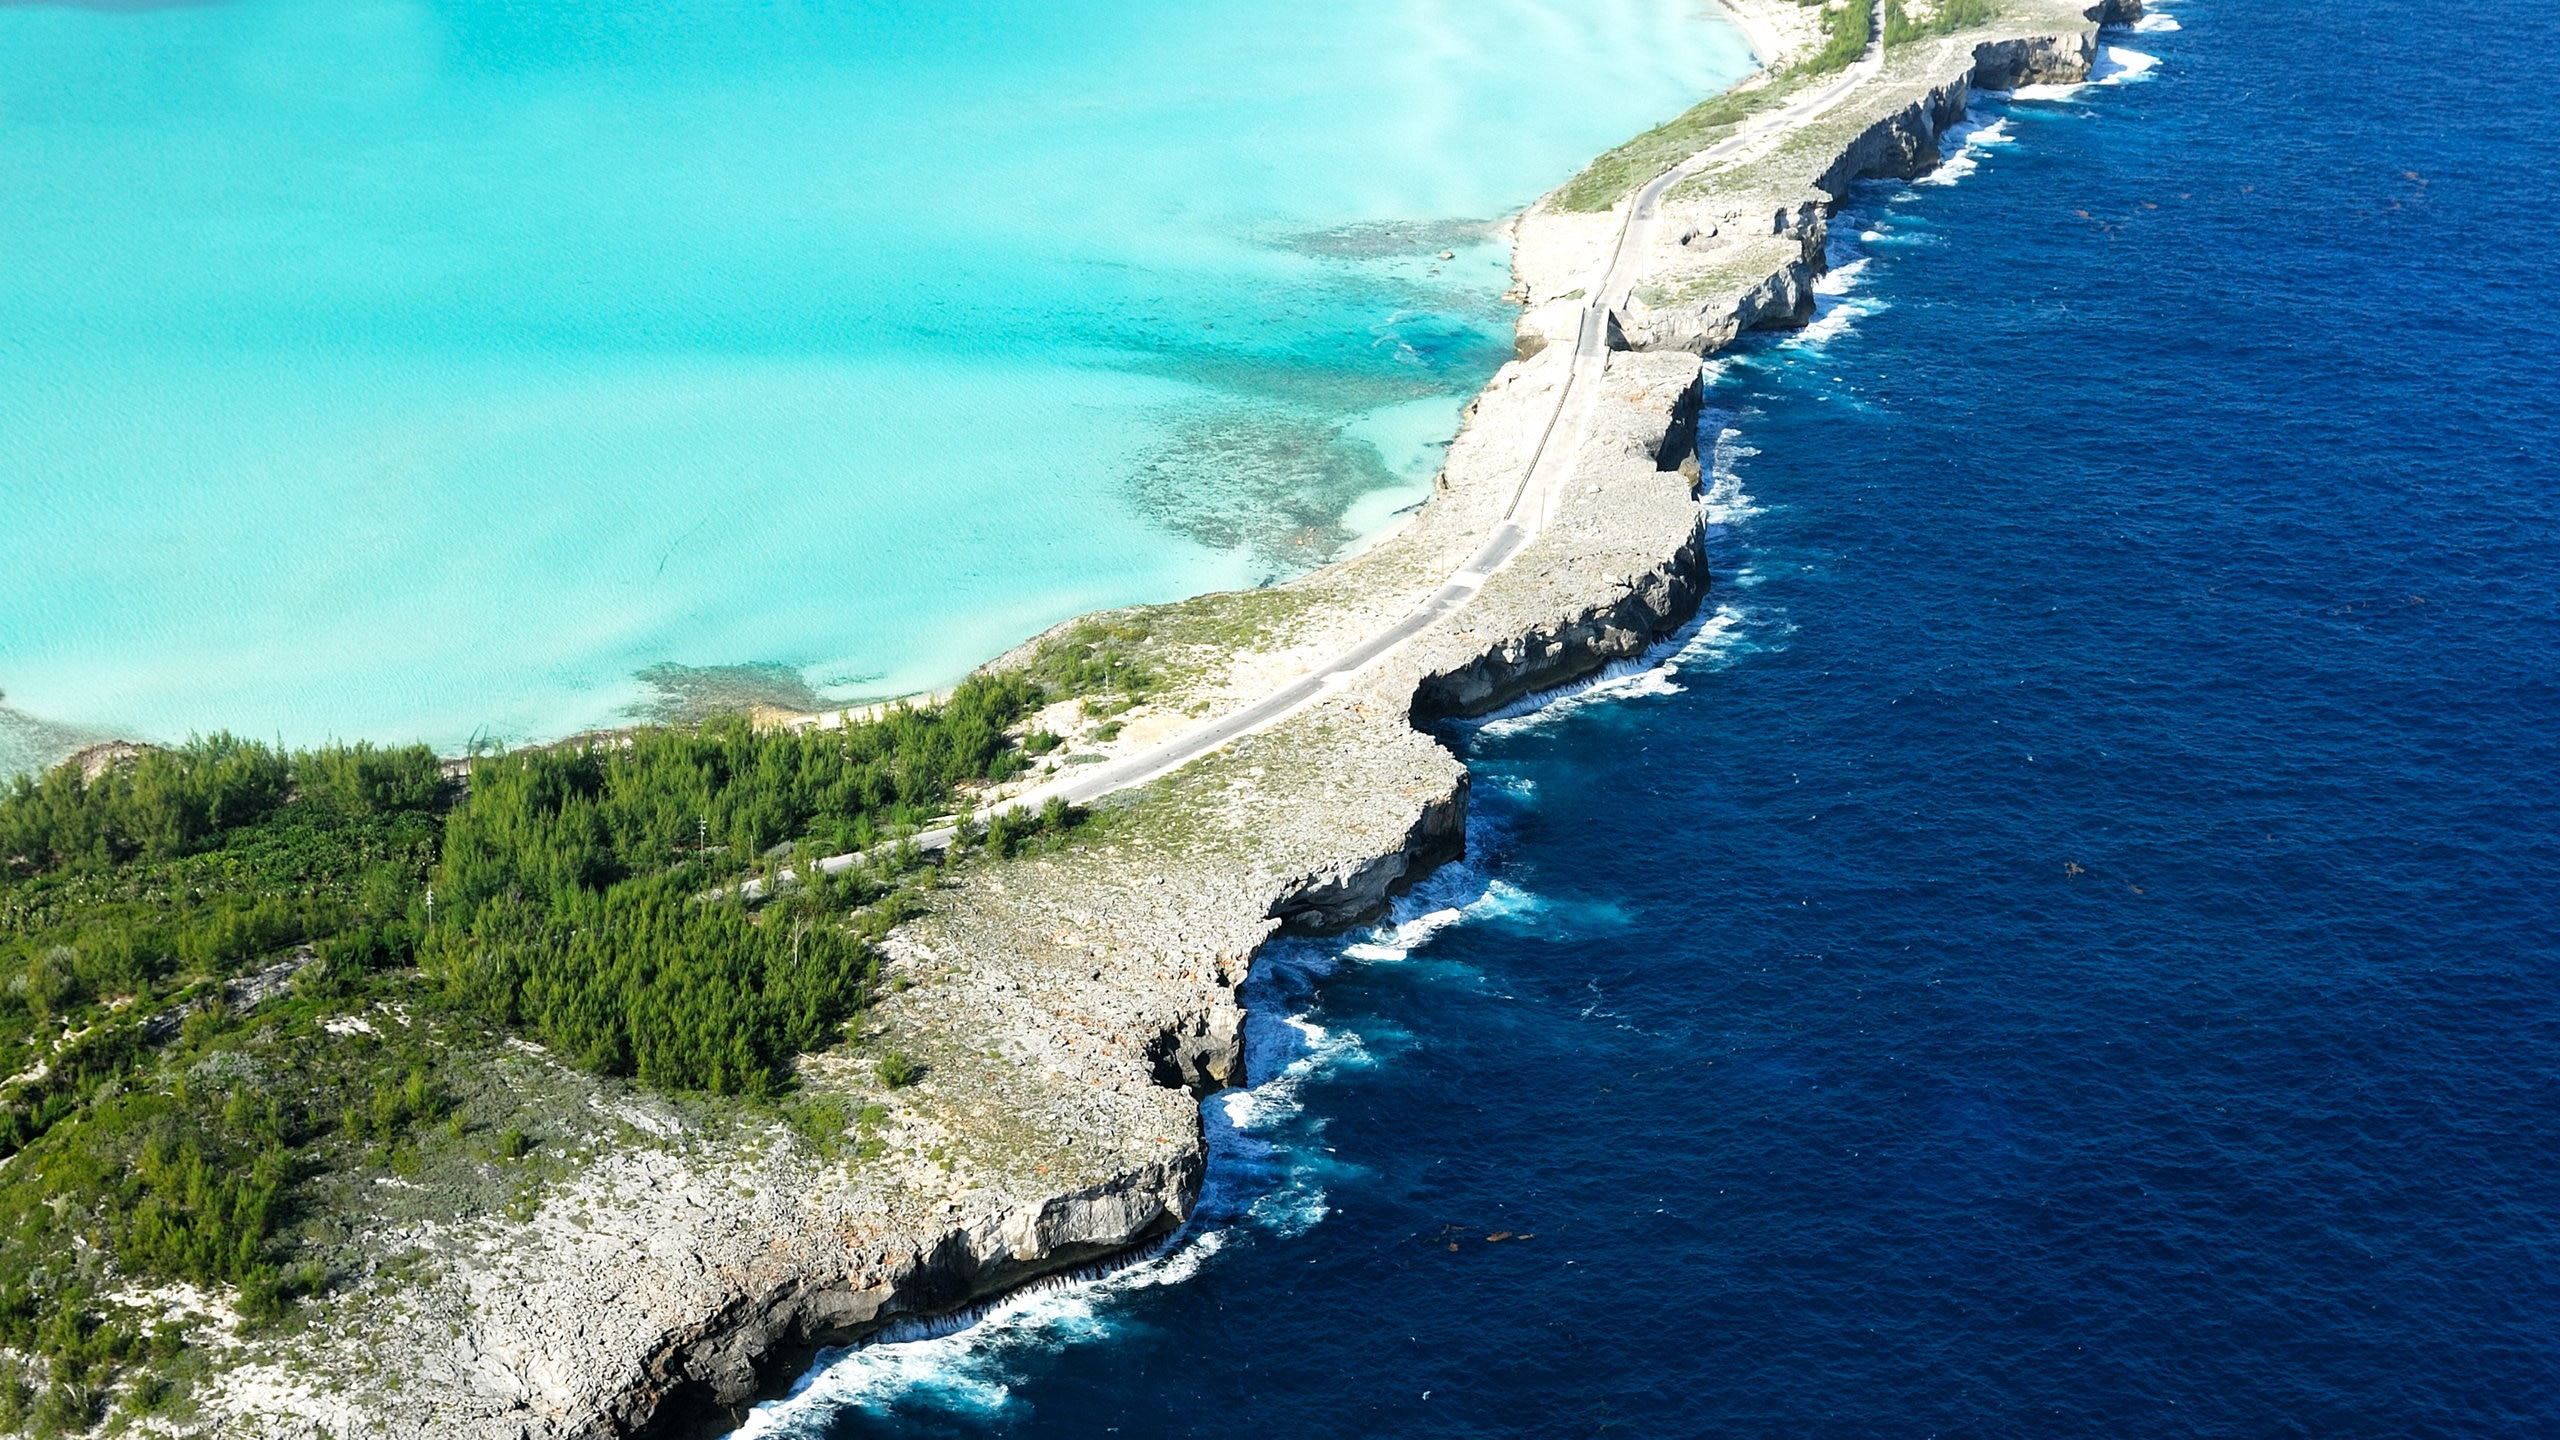 Gregory Town, Central Eleuthera, Bahamas